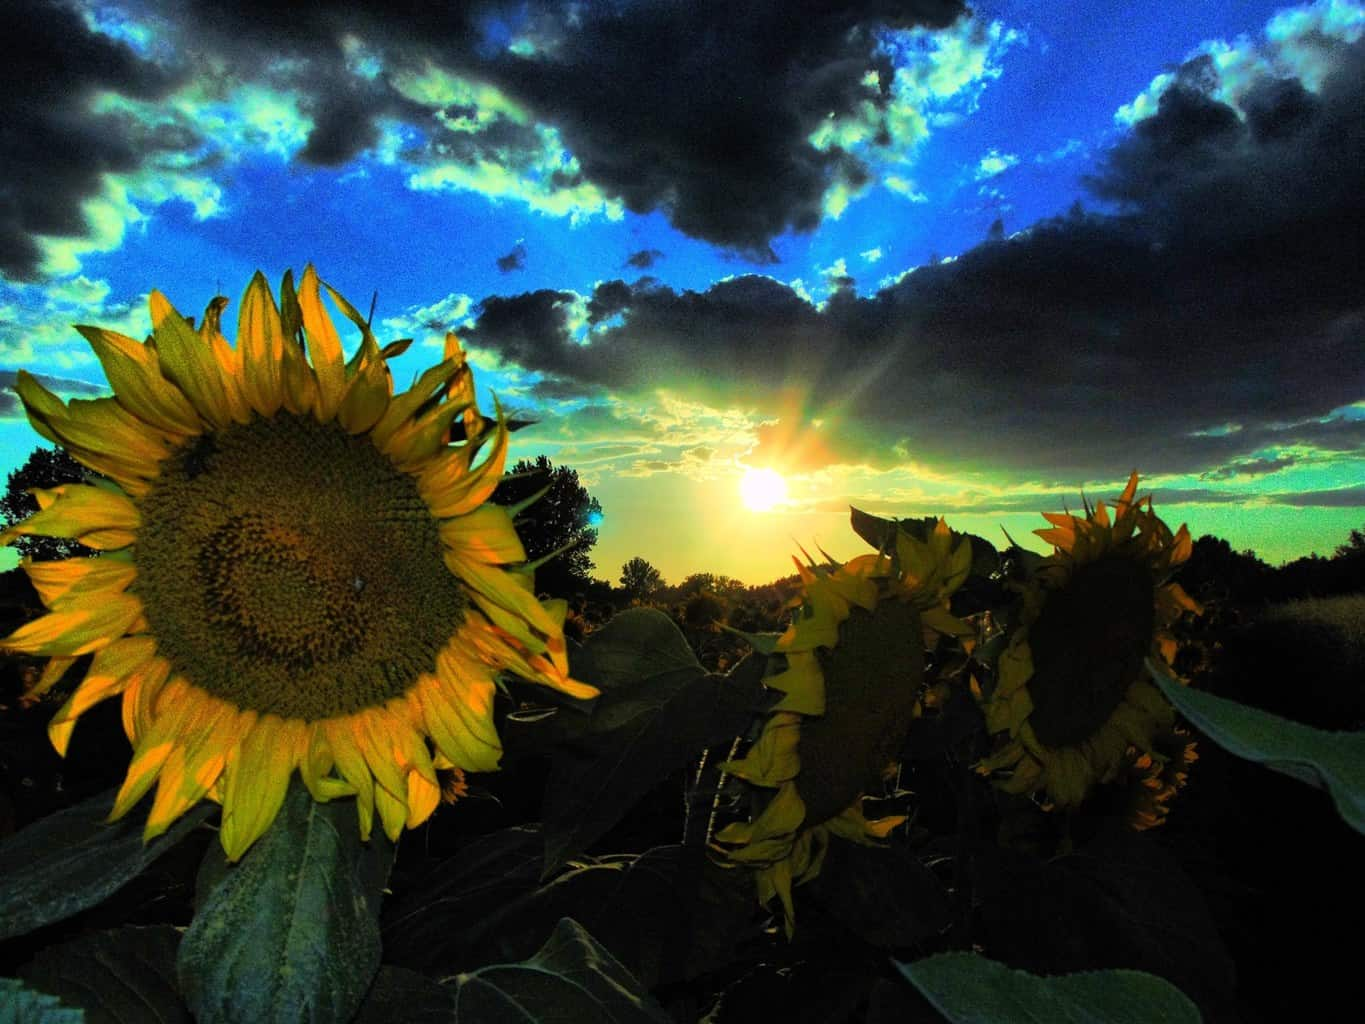 Last summer between sunflowers.